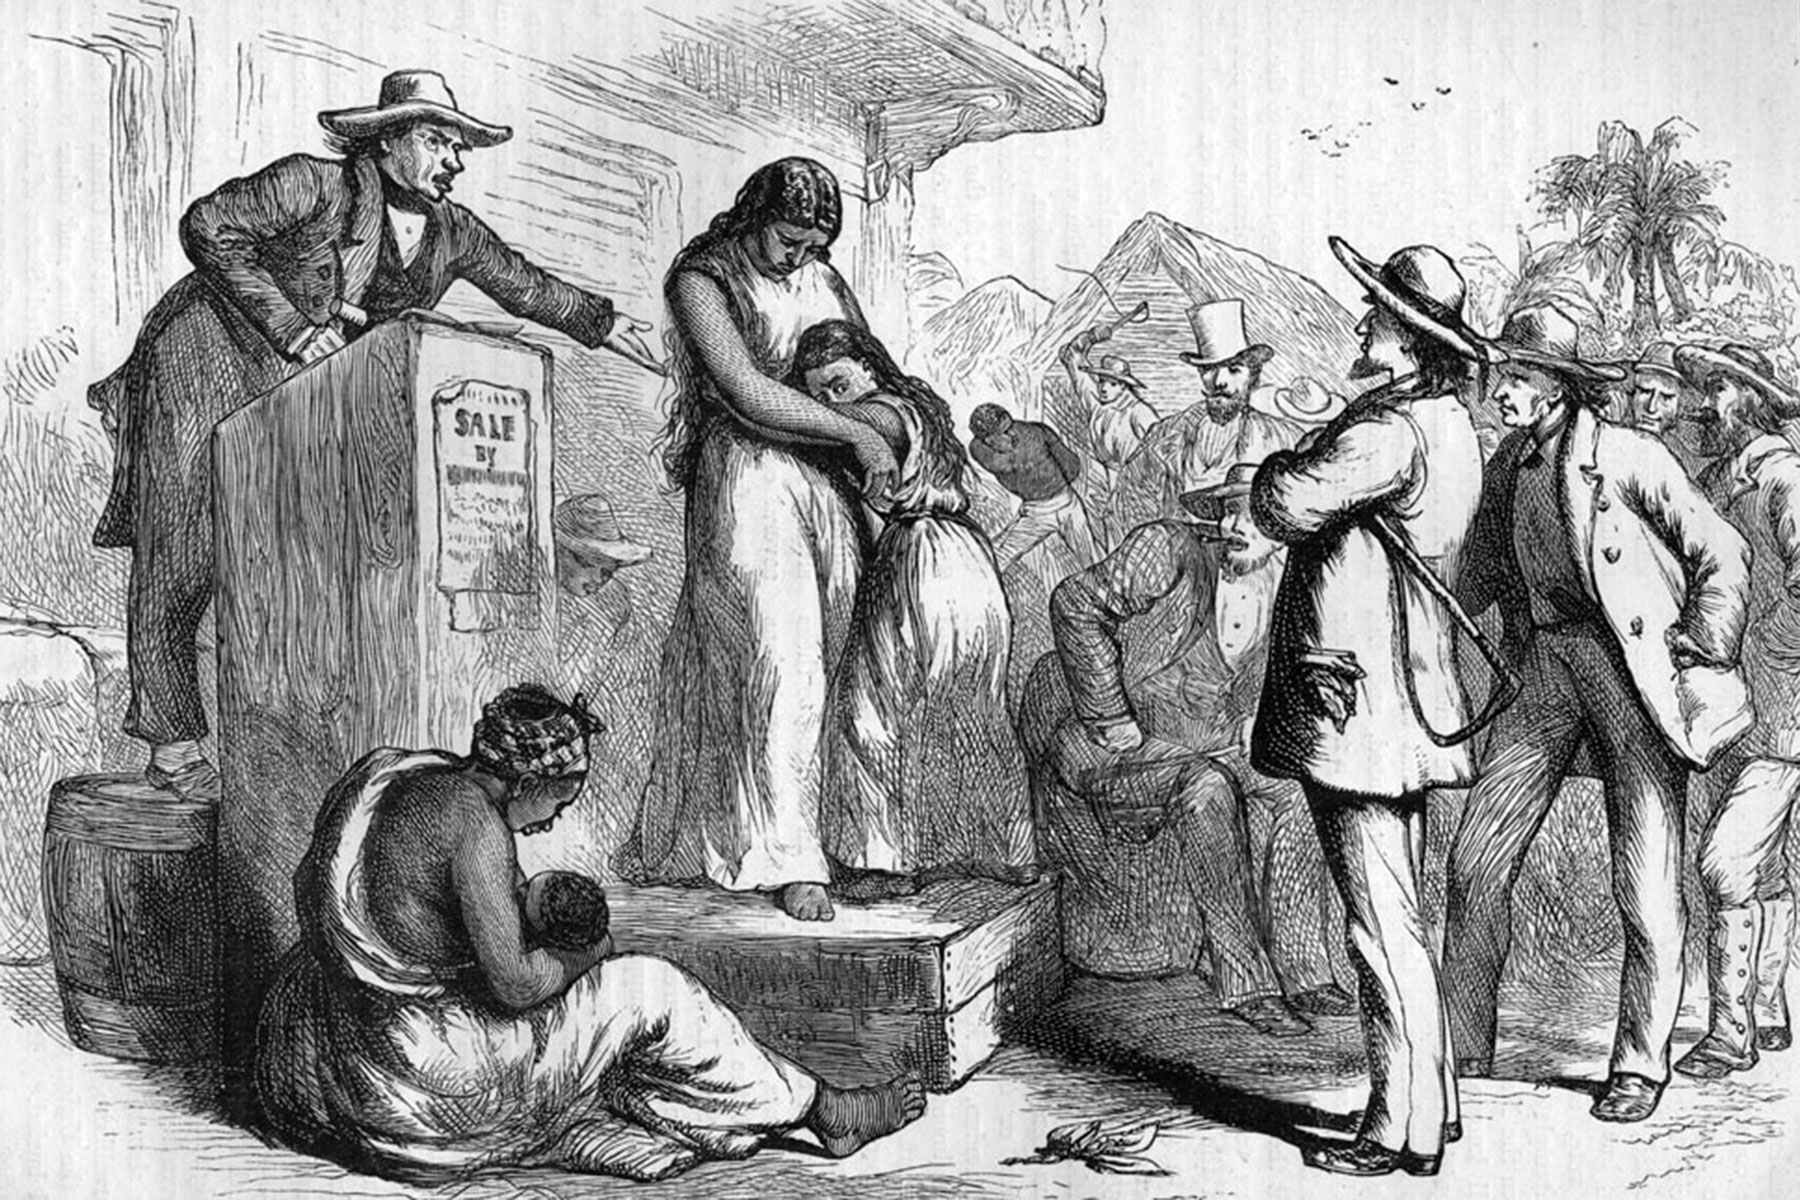 America S Legacy Of Slavery Seen In Trump Policy